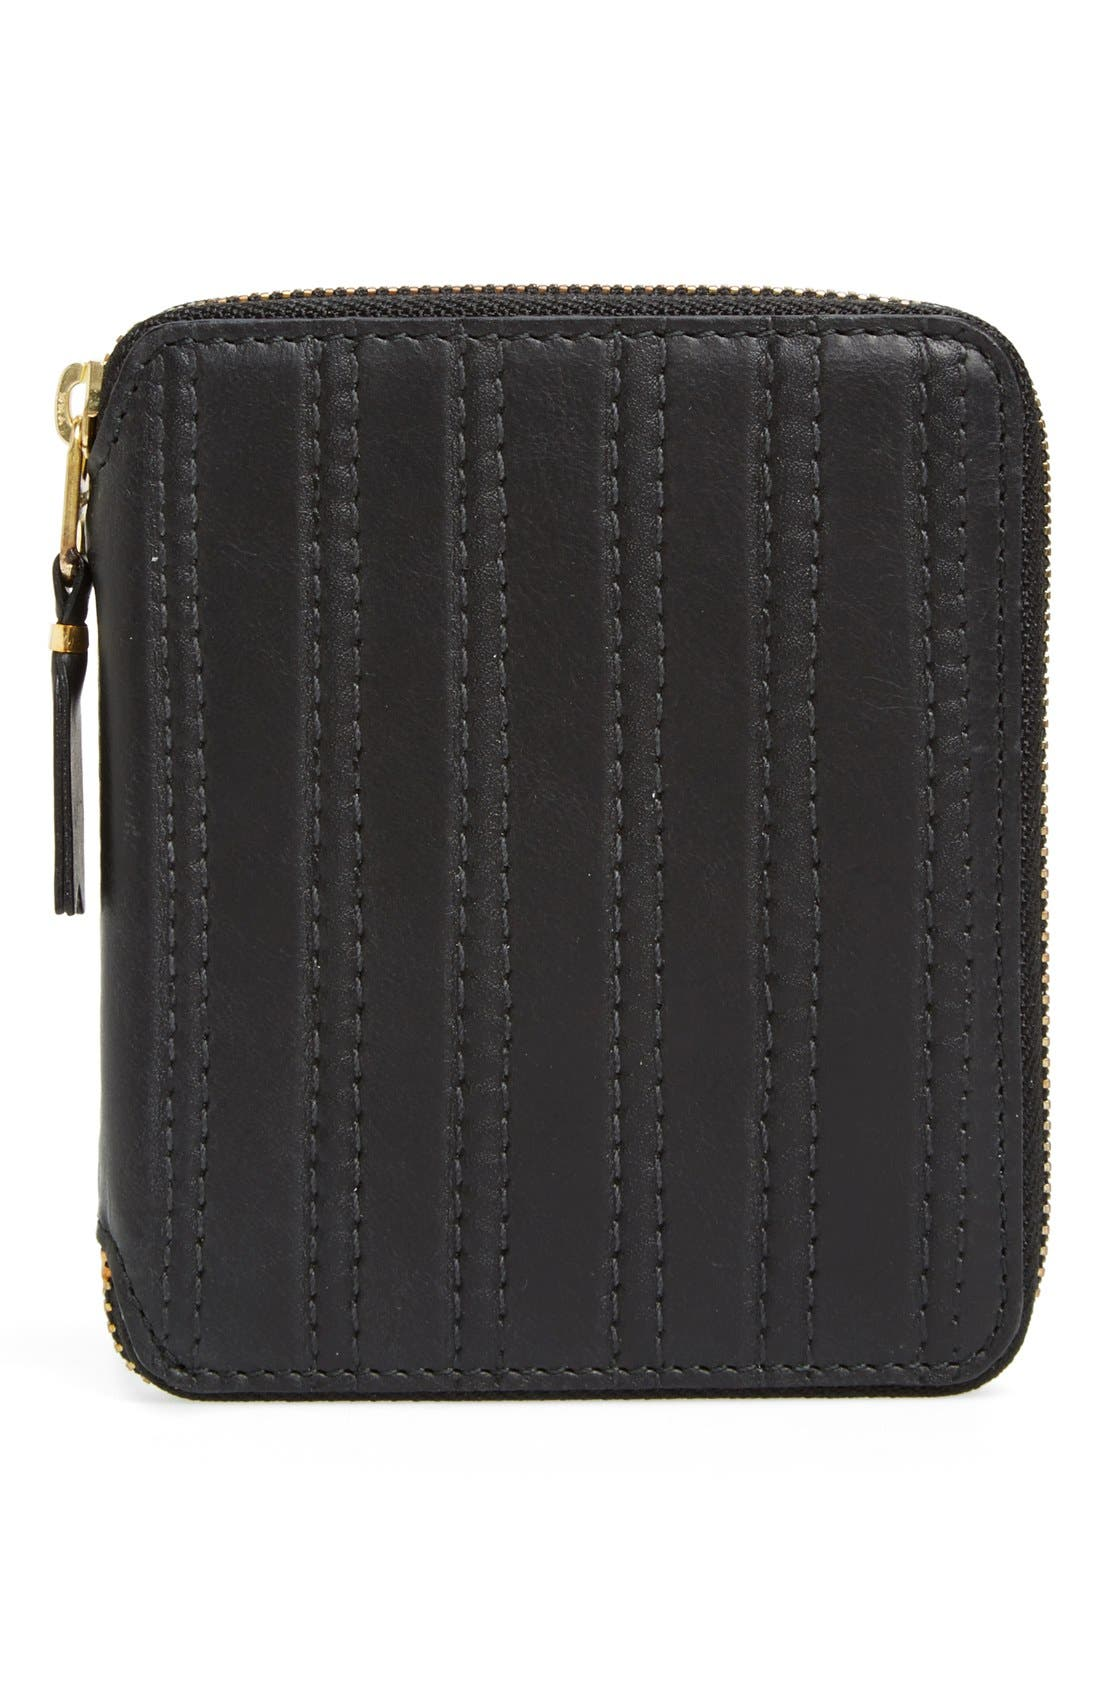 COMME DES GARÇONS 'Embossed Stitch' French Wallet